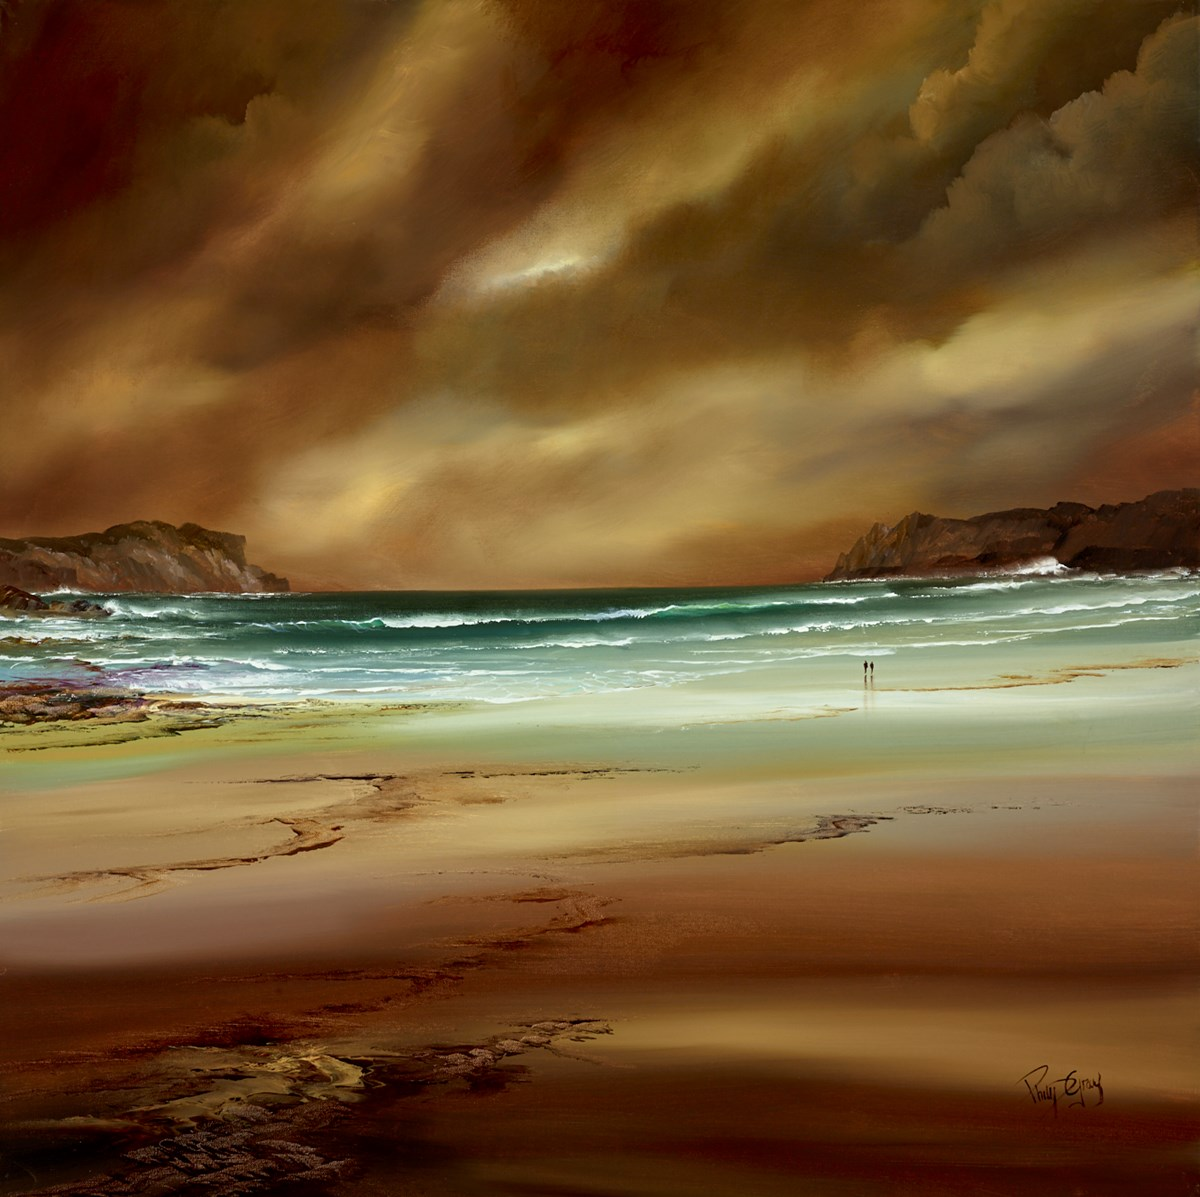 Walking on the Sands IV by philip gray -  sized 36x36 inches. Available from Whitewall Galleries